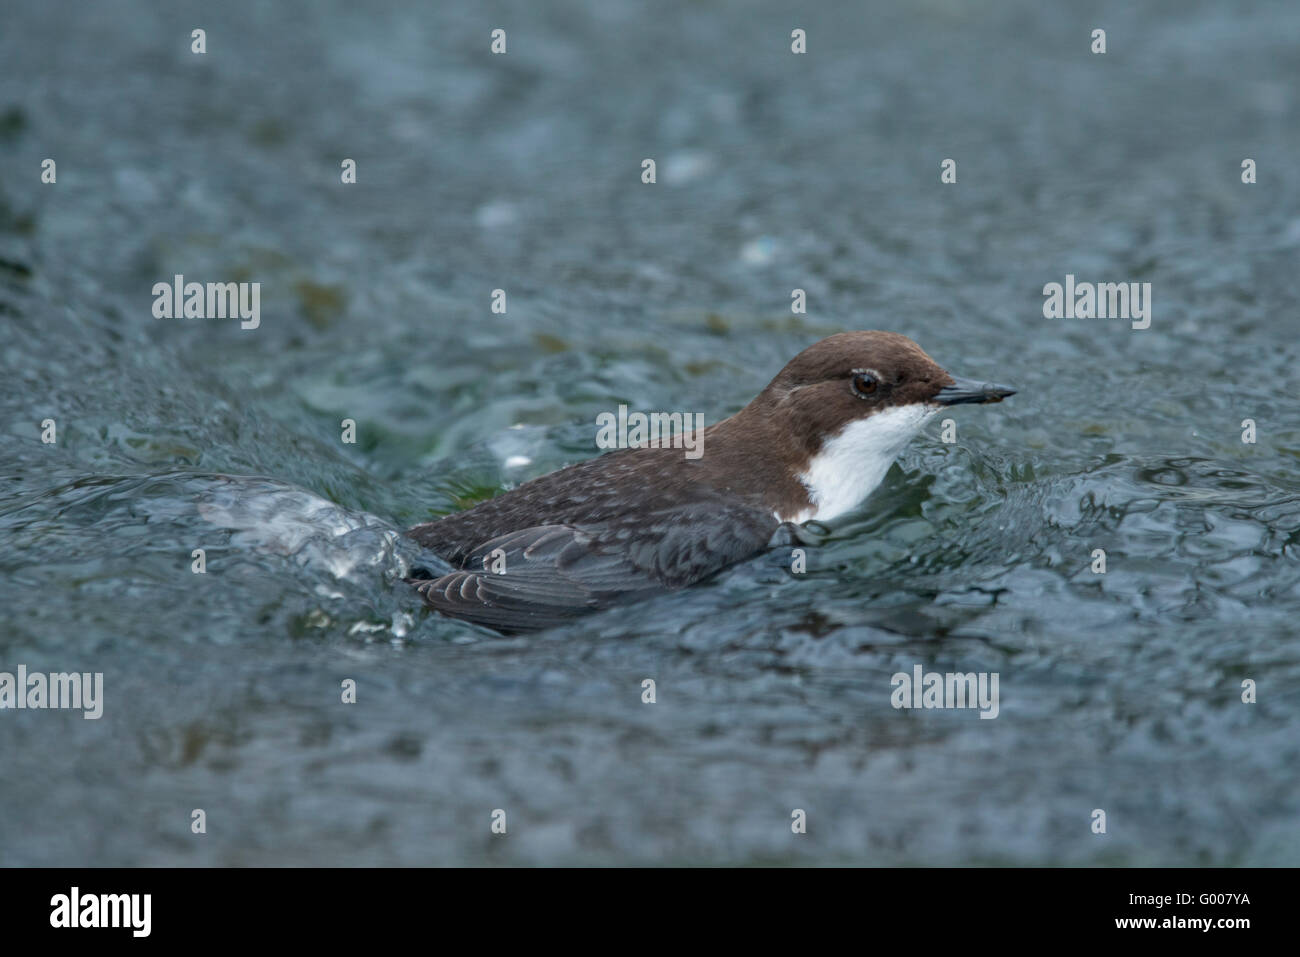 White-throated dipper (Cinclus cinclus) hunting for aquatic insects or caddis worms in a swiftly running stream - Stock Image